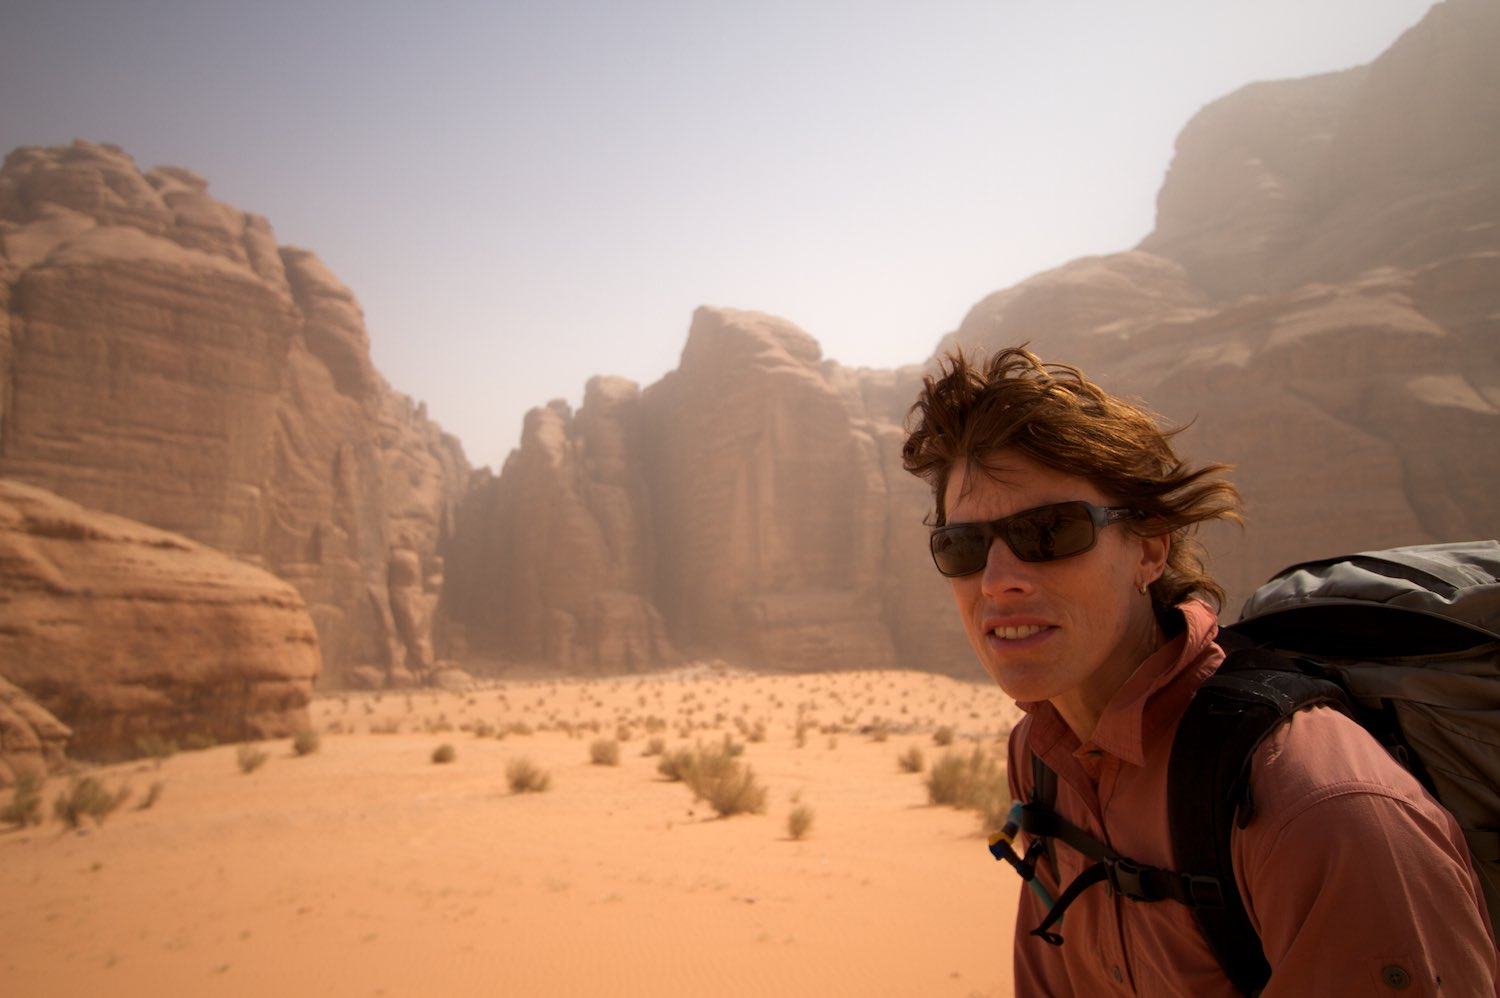 Getting windblown in a sand storm